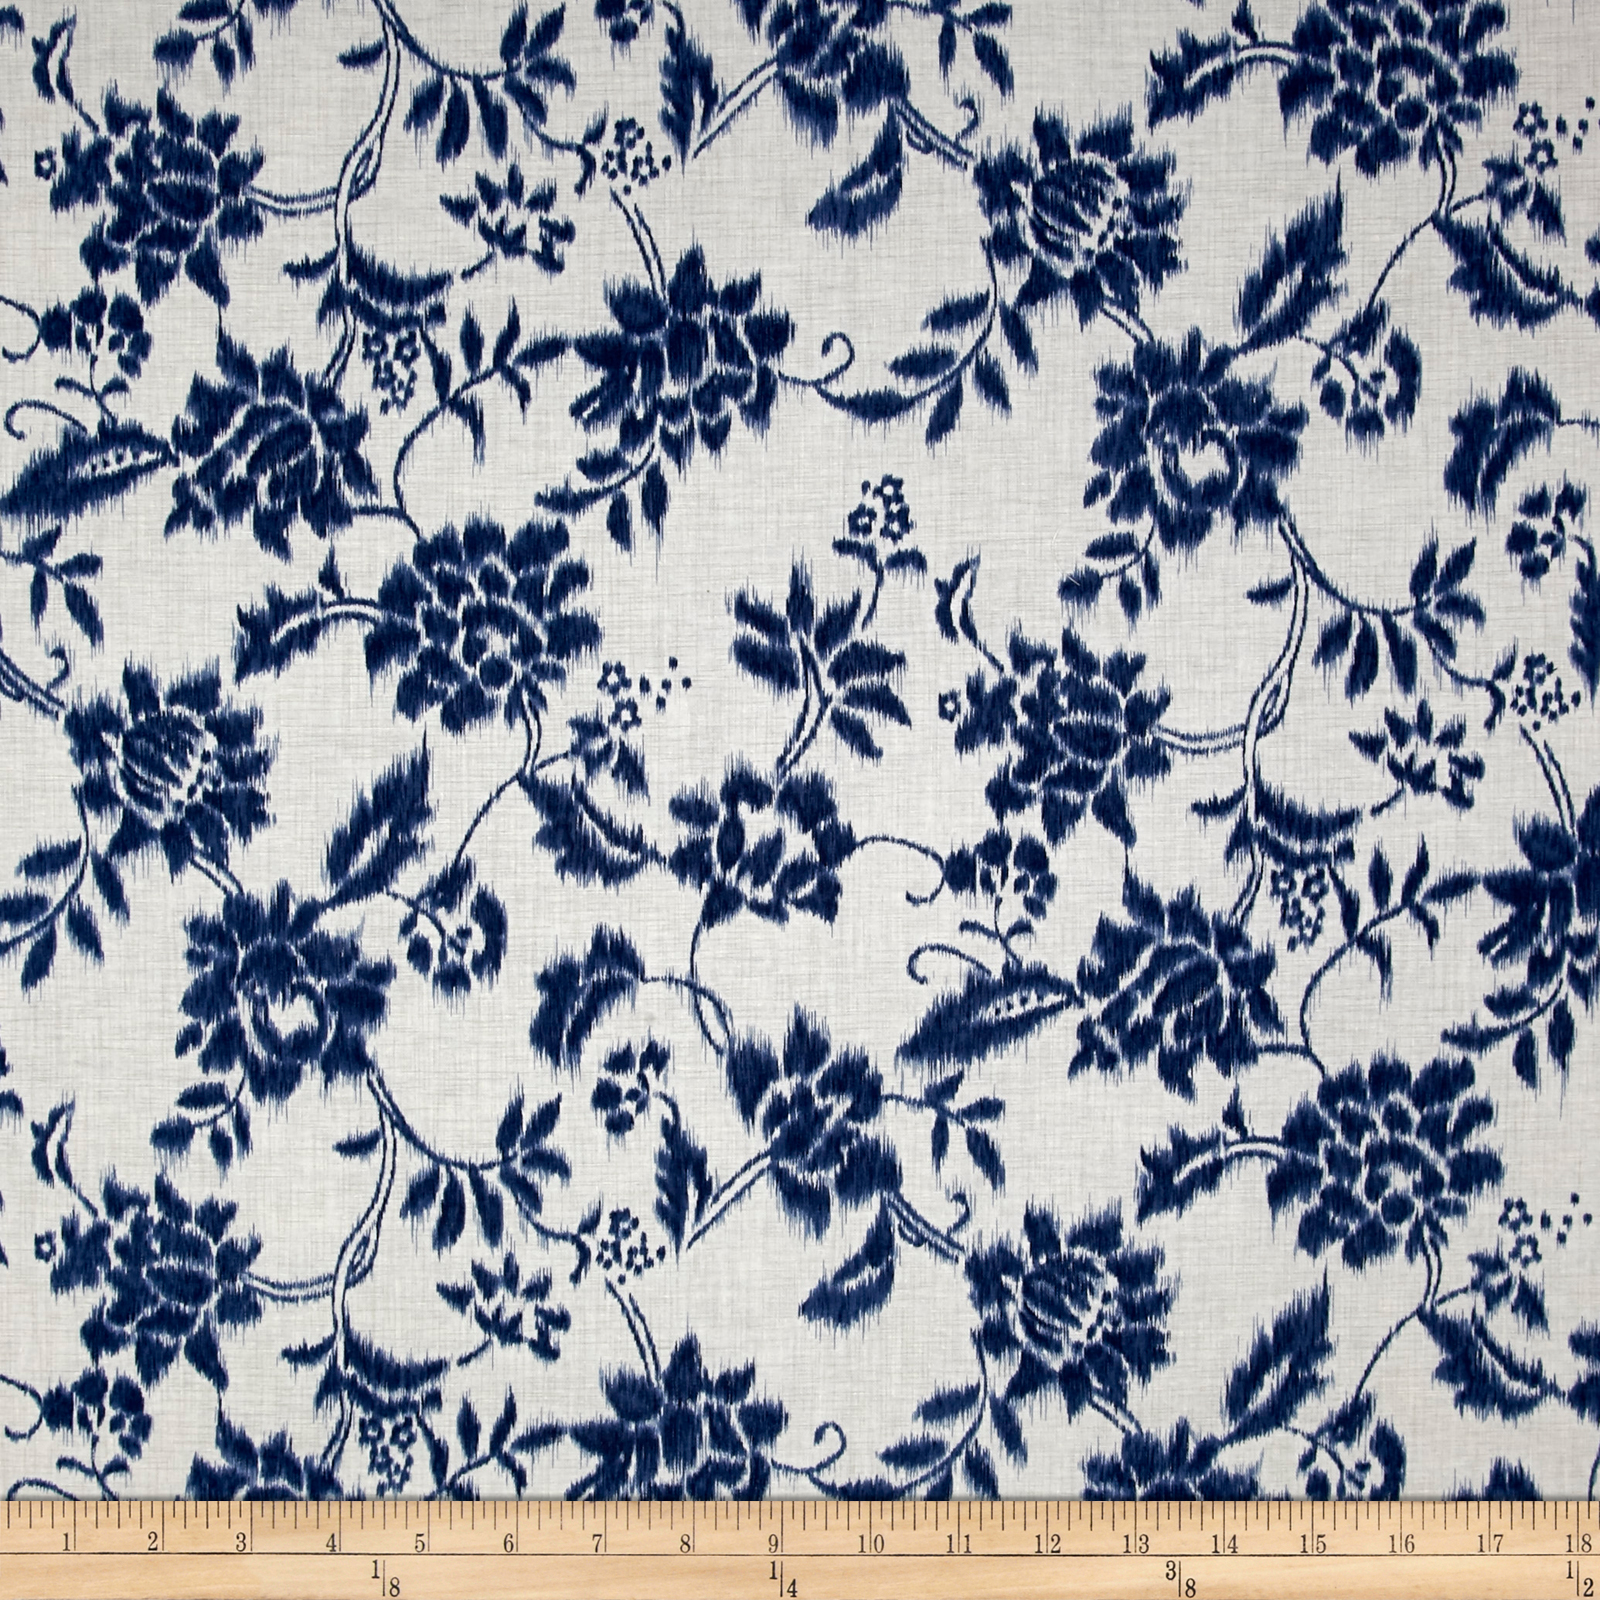 Indigo Summer Graphic Floral Cream Fabric by Hoffman of California in USA